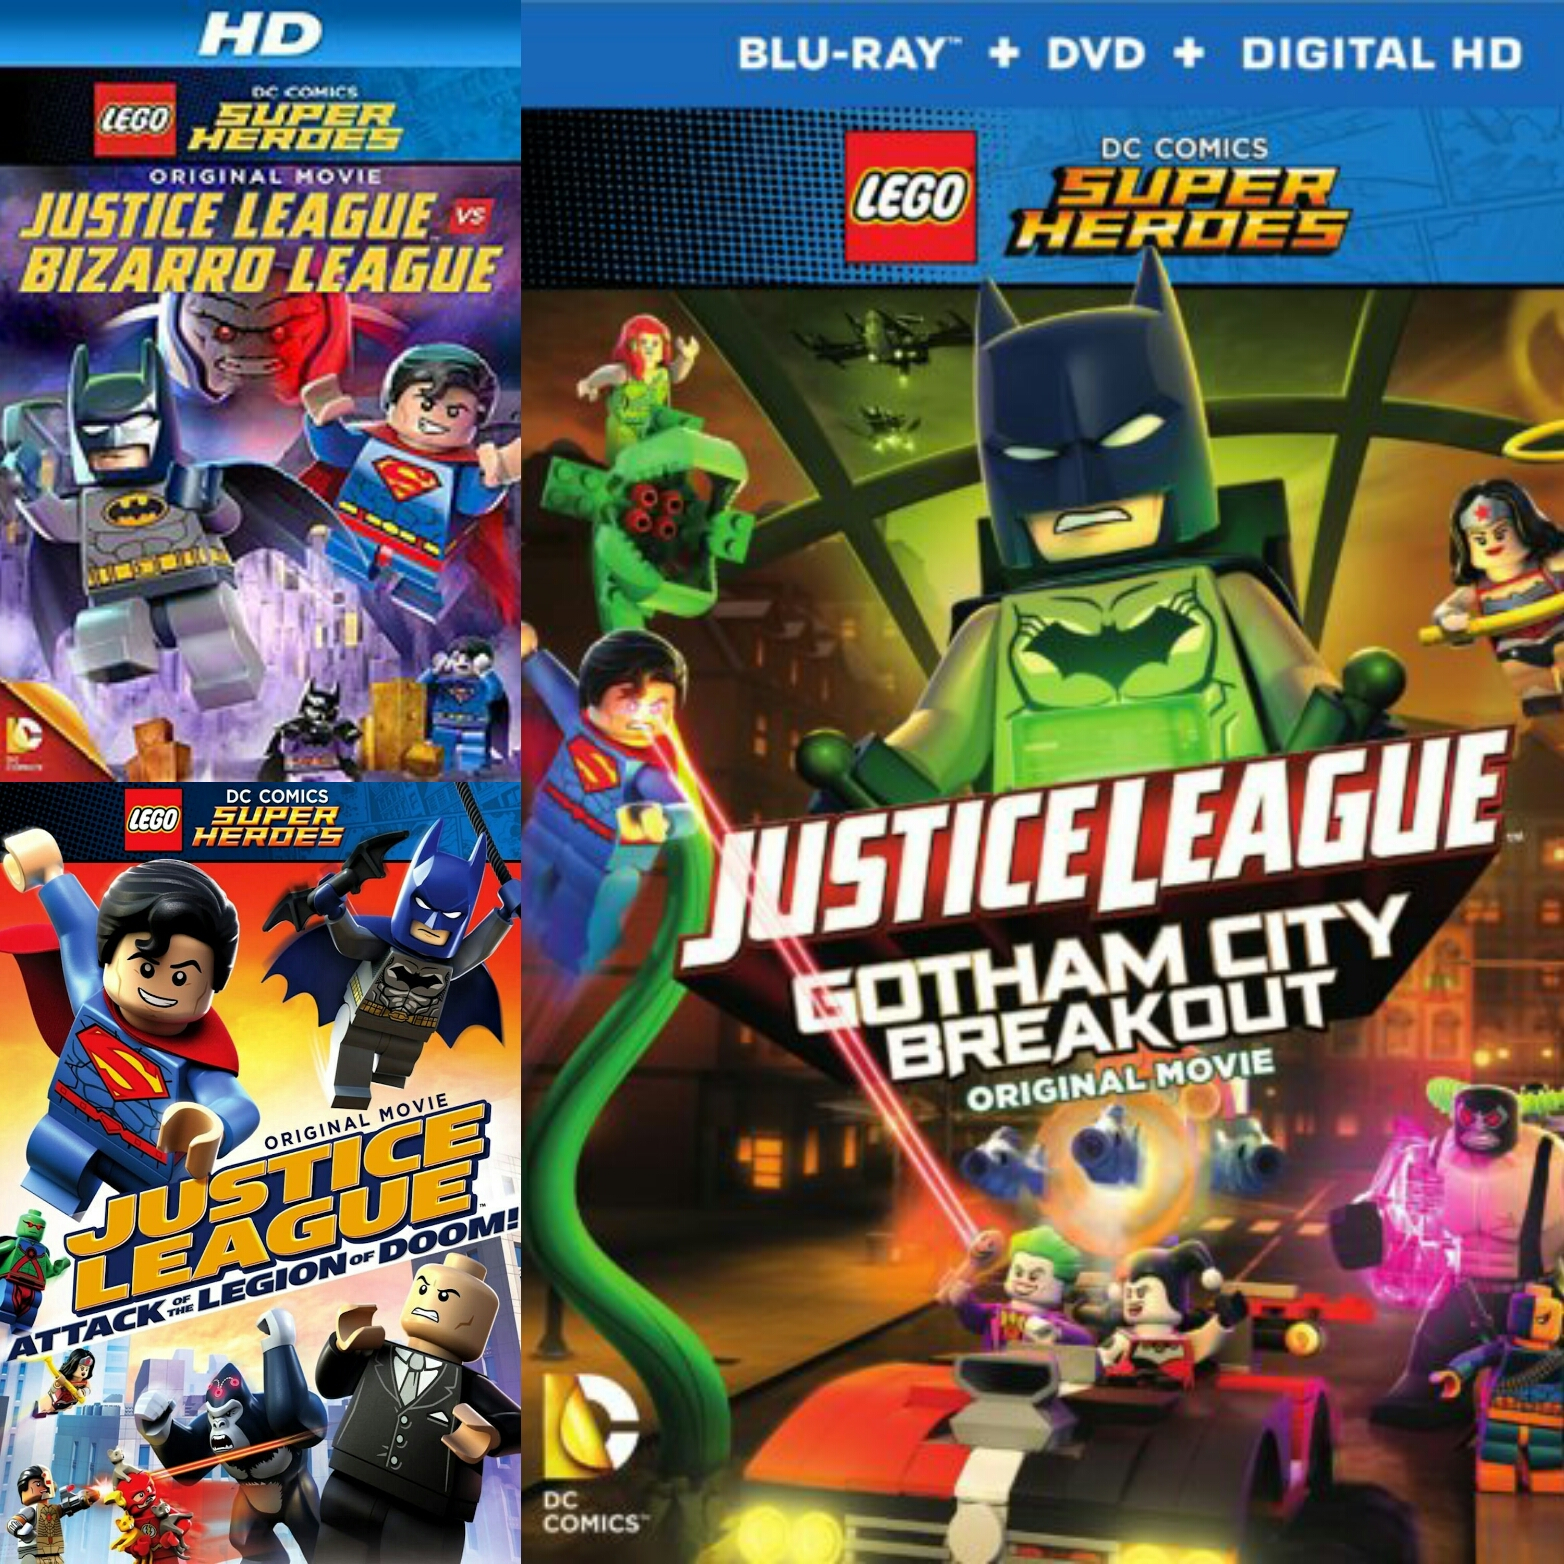 5 ways to pumped at your the lego batman movie pre screening party